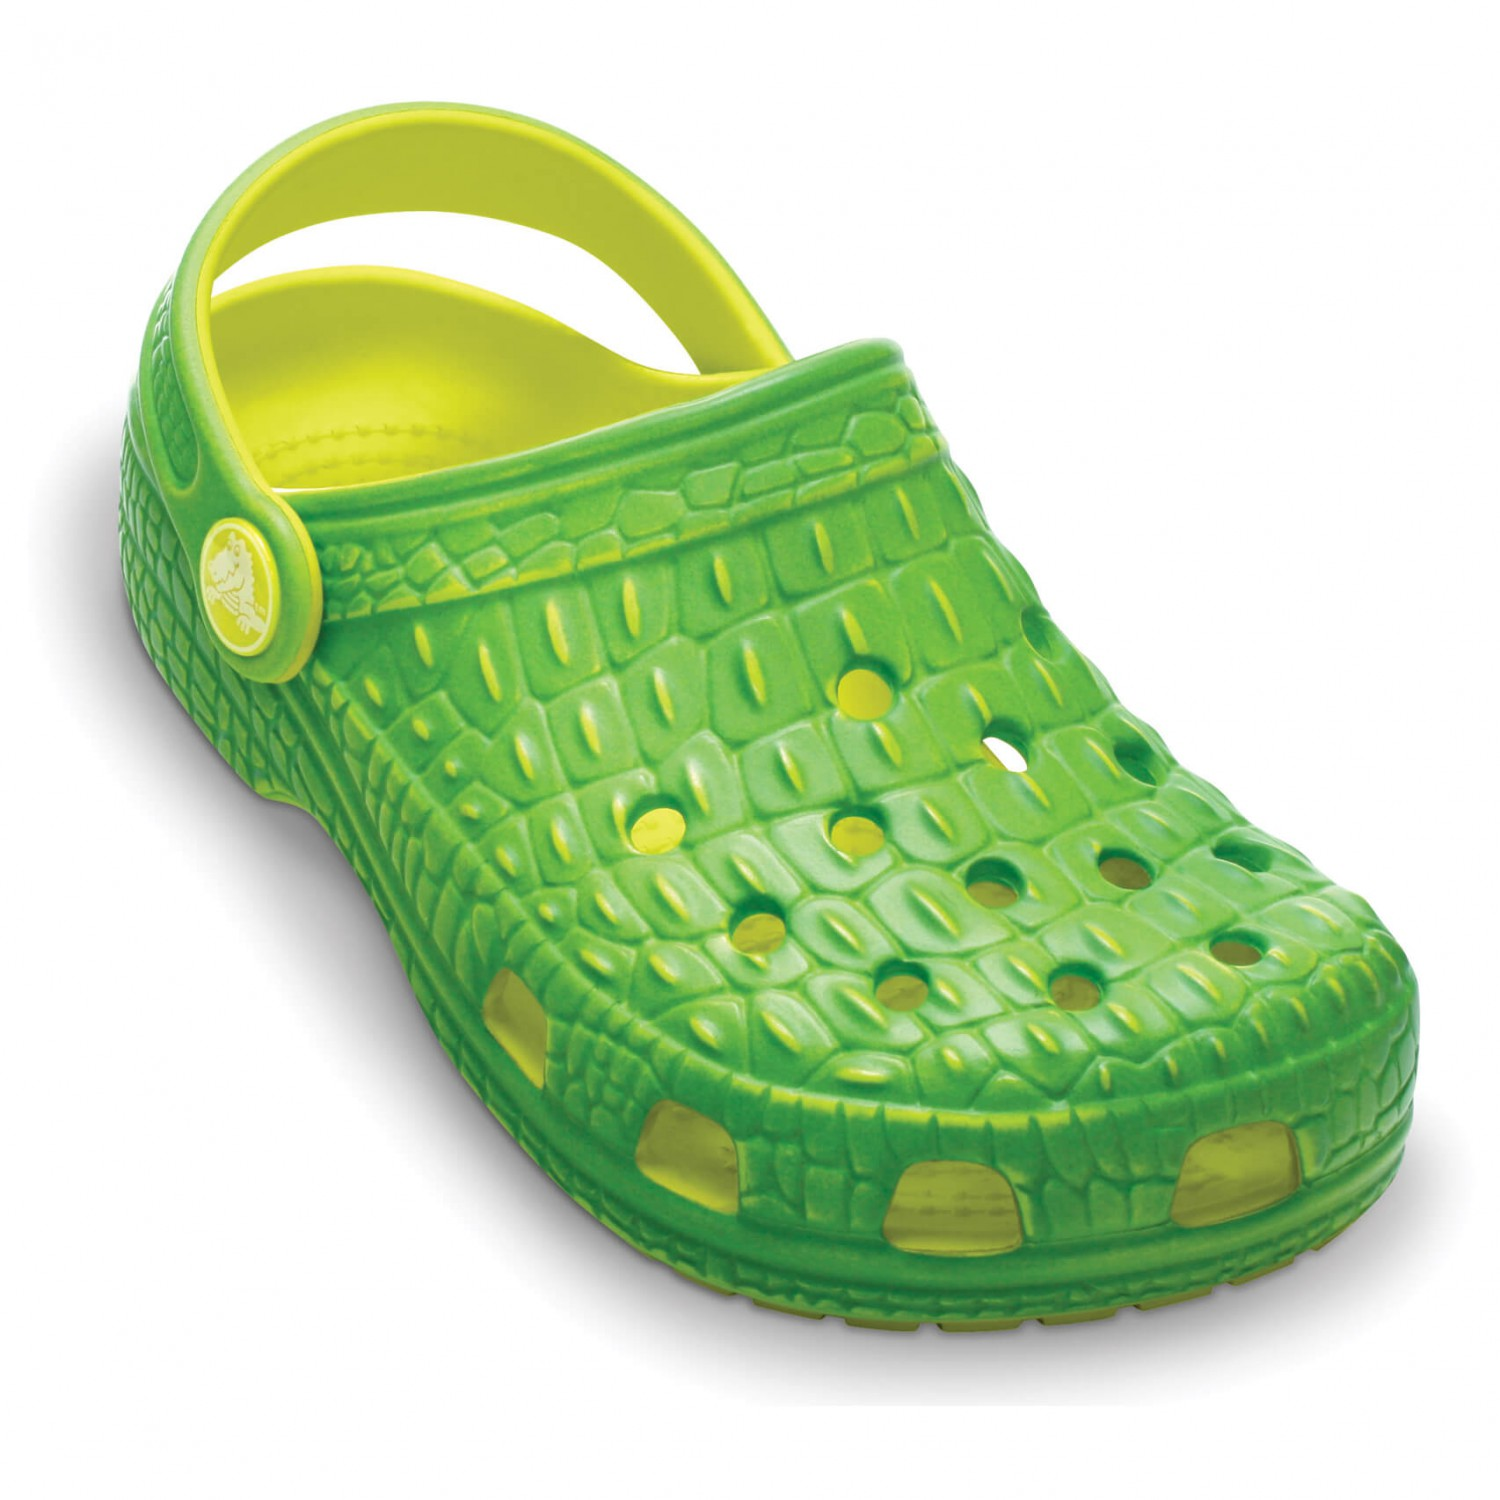 Buy crocs kids | Find more than 30 Sandals,Casual & Dress Shoes,Boots. Buy online from Crocs,Andrews Mcmeel Publishing,Kaadoo Crocs & Giraffes Dubai at best price Up to 70% Off | Souq Prices of all products on viplikecuatoi.ml are now inclusive of VAT Details.